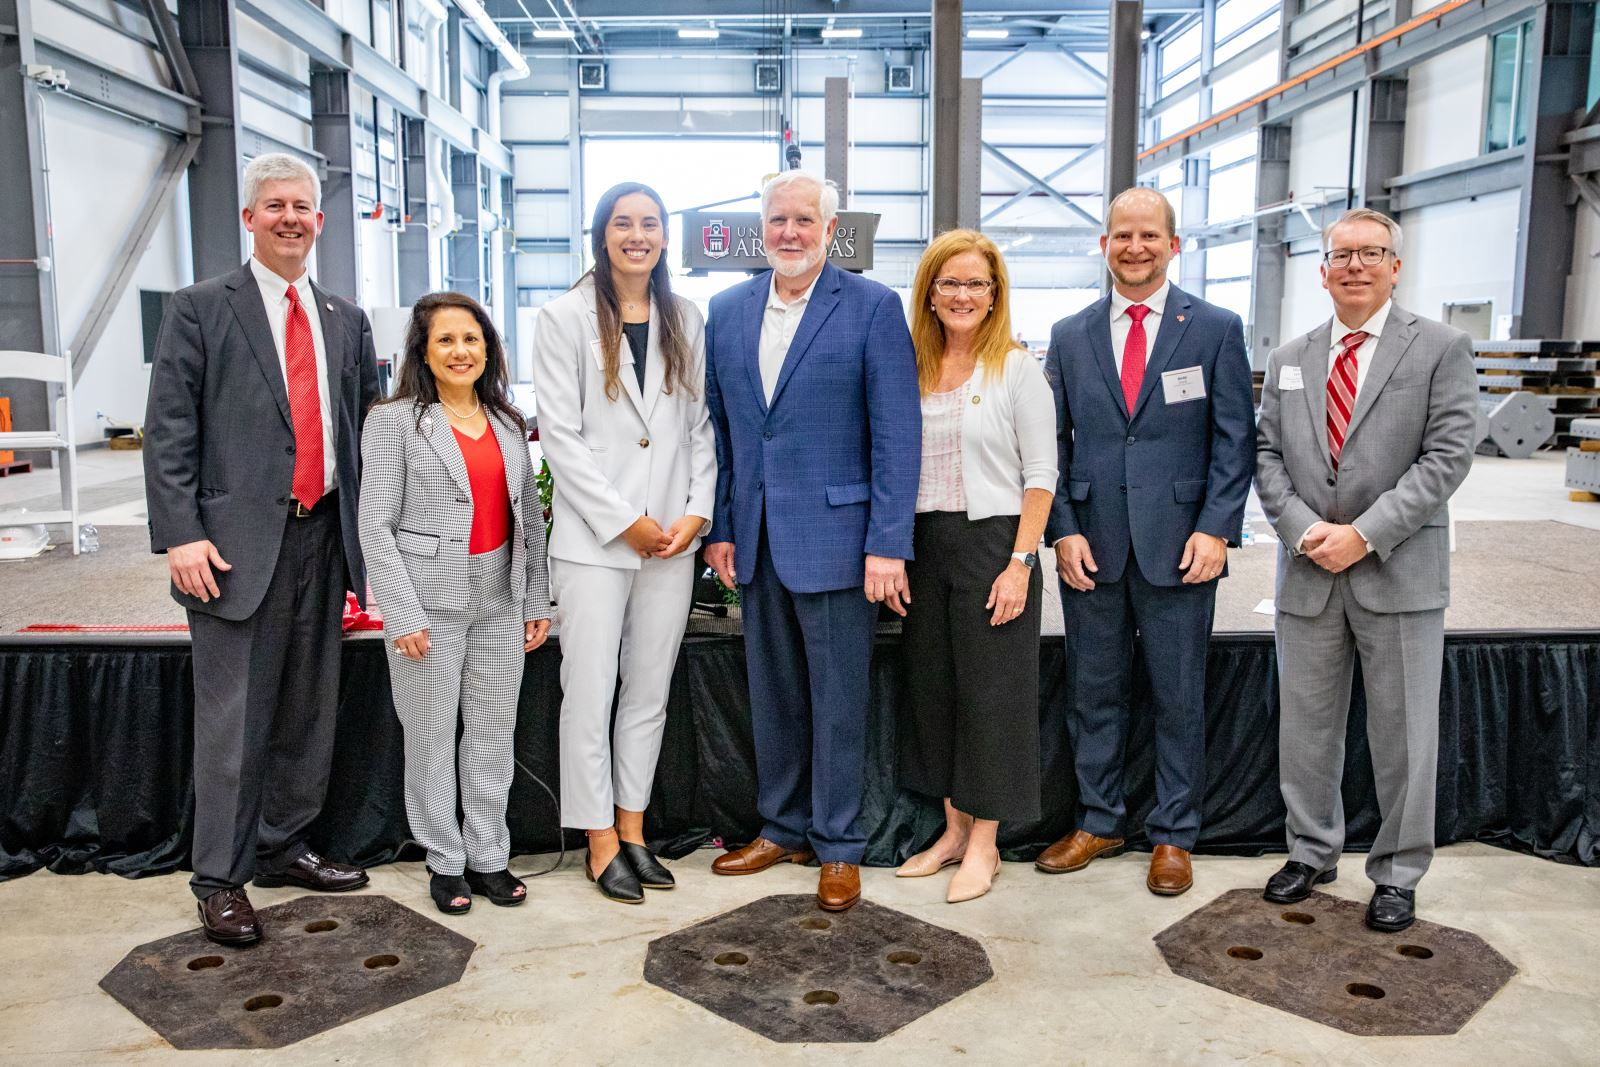 Left to right, Acting Chancellor Bill Kincaid, Dean of Engineering Kim Needy, Ph.D. student Bette Poblete, Grady E. Harvell, Stephanie Blevins on behalf of Governor Hutchinson, former representative of the 'State Andy Davis and CVEG Department Head Micah Hale